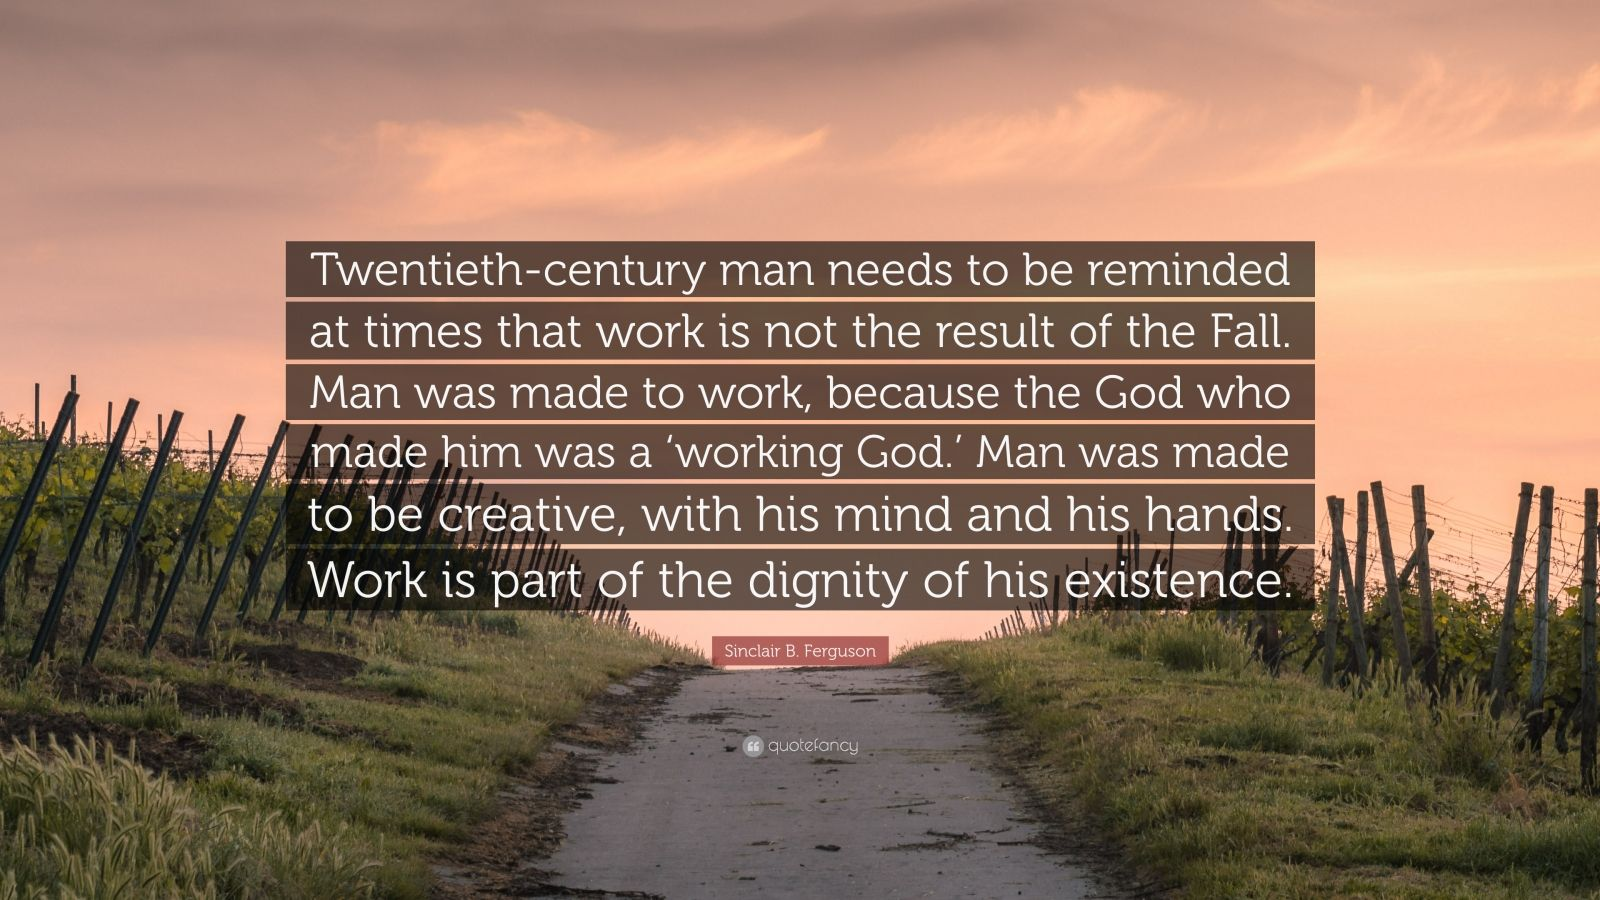 "Sinclair B. Ferguson Quote: ""Twentieth-century man needs to be reminded at times that work is not the result of the Fall. Man was made to work, because the God who made him was a 'working God.' Man was made to be creative, with his mind and his hands. Work is part of the dignity of his existence."""